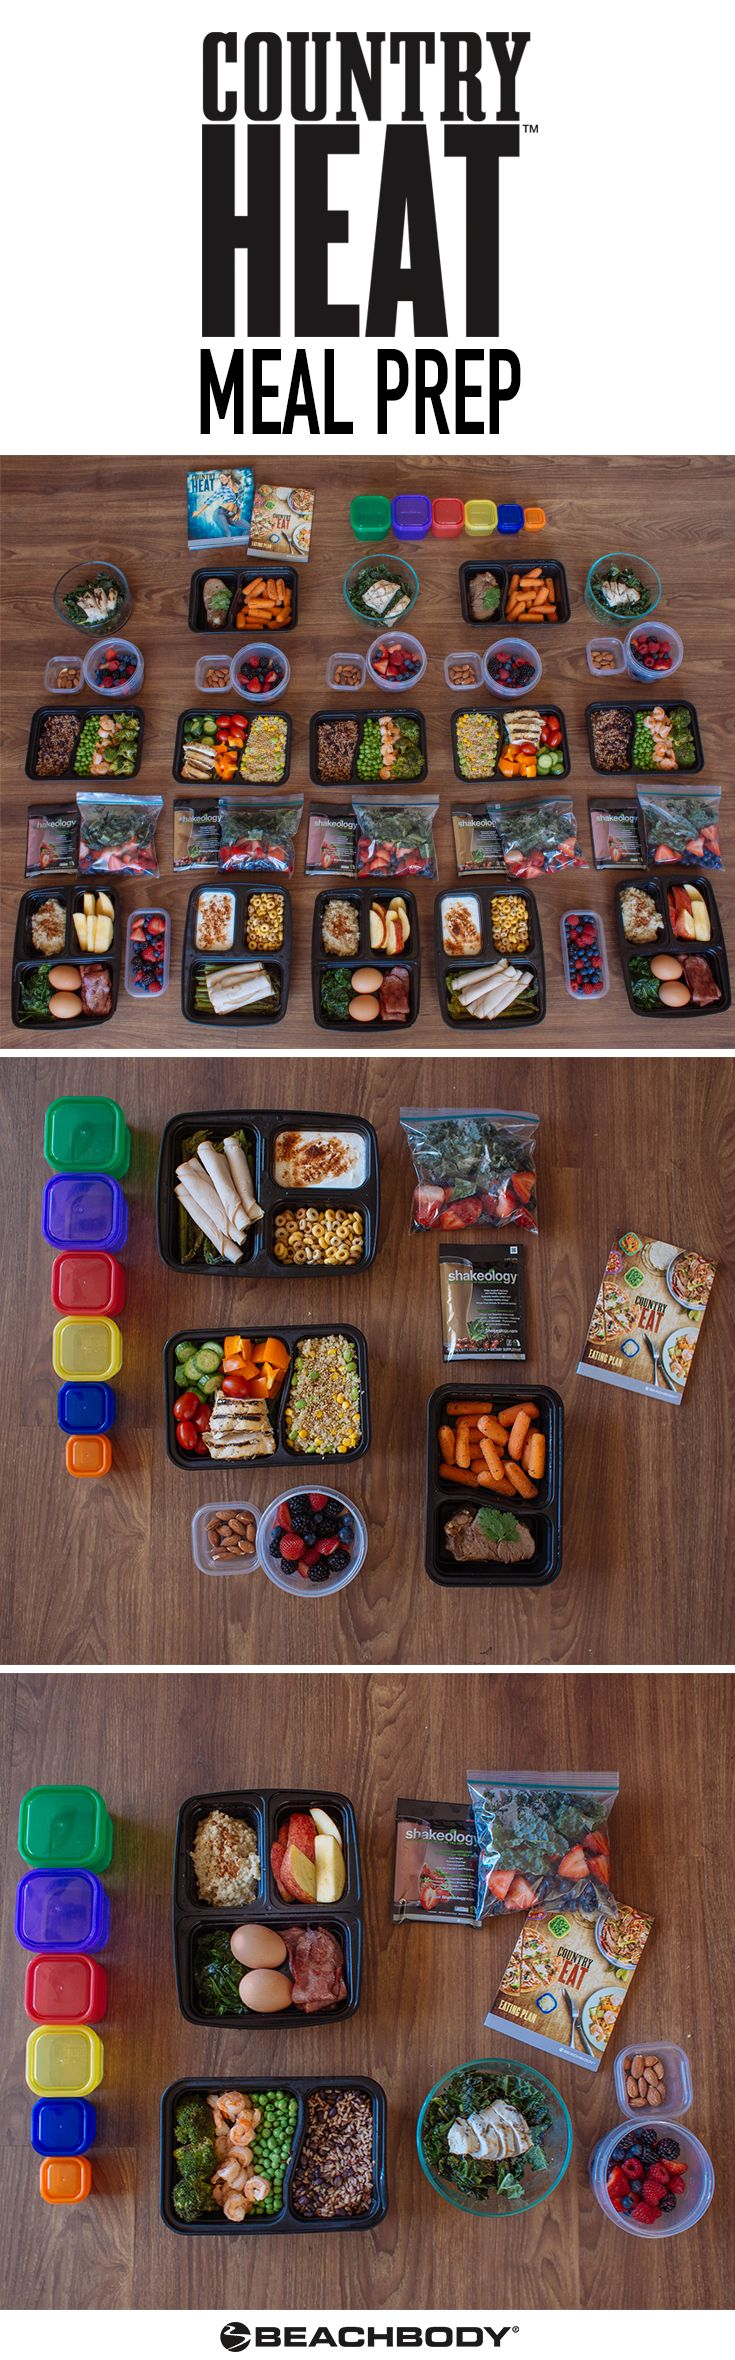 Turn up the heat in the kitchen with this Country Heat meal prep! Made for the 1,800–2,099 calorie level, it will help you eat clean and healthy foods all week long. We even included a step-by-step guide to help you make it as quickly as possible! #mealprep #mealplanning #mealprepideas #healthyeating #countryheat